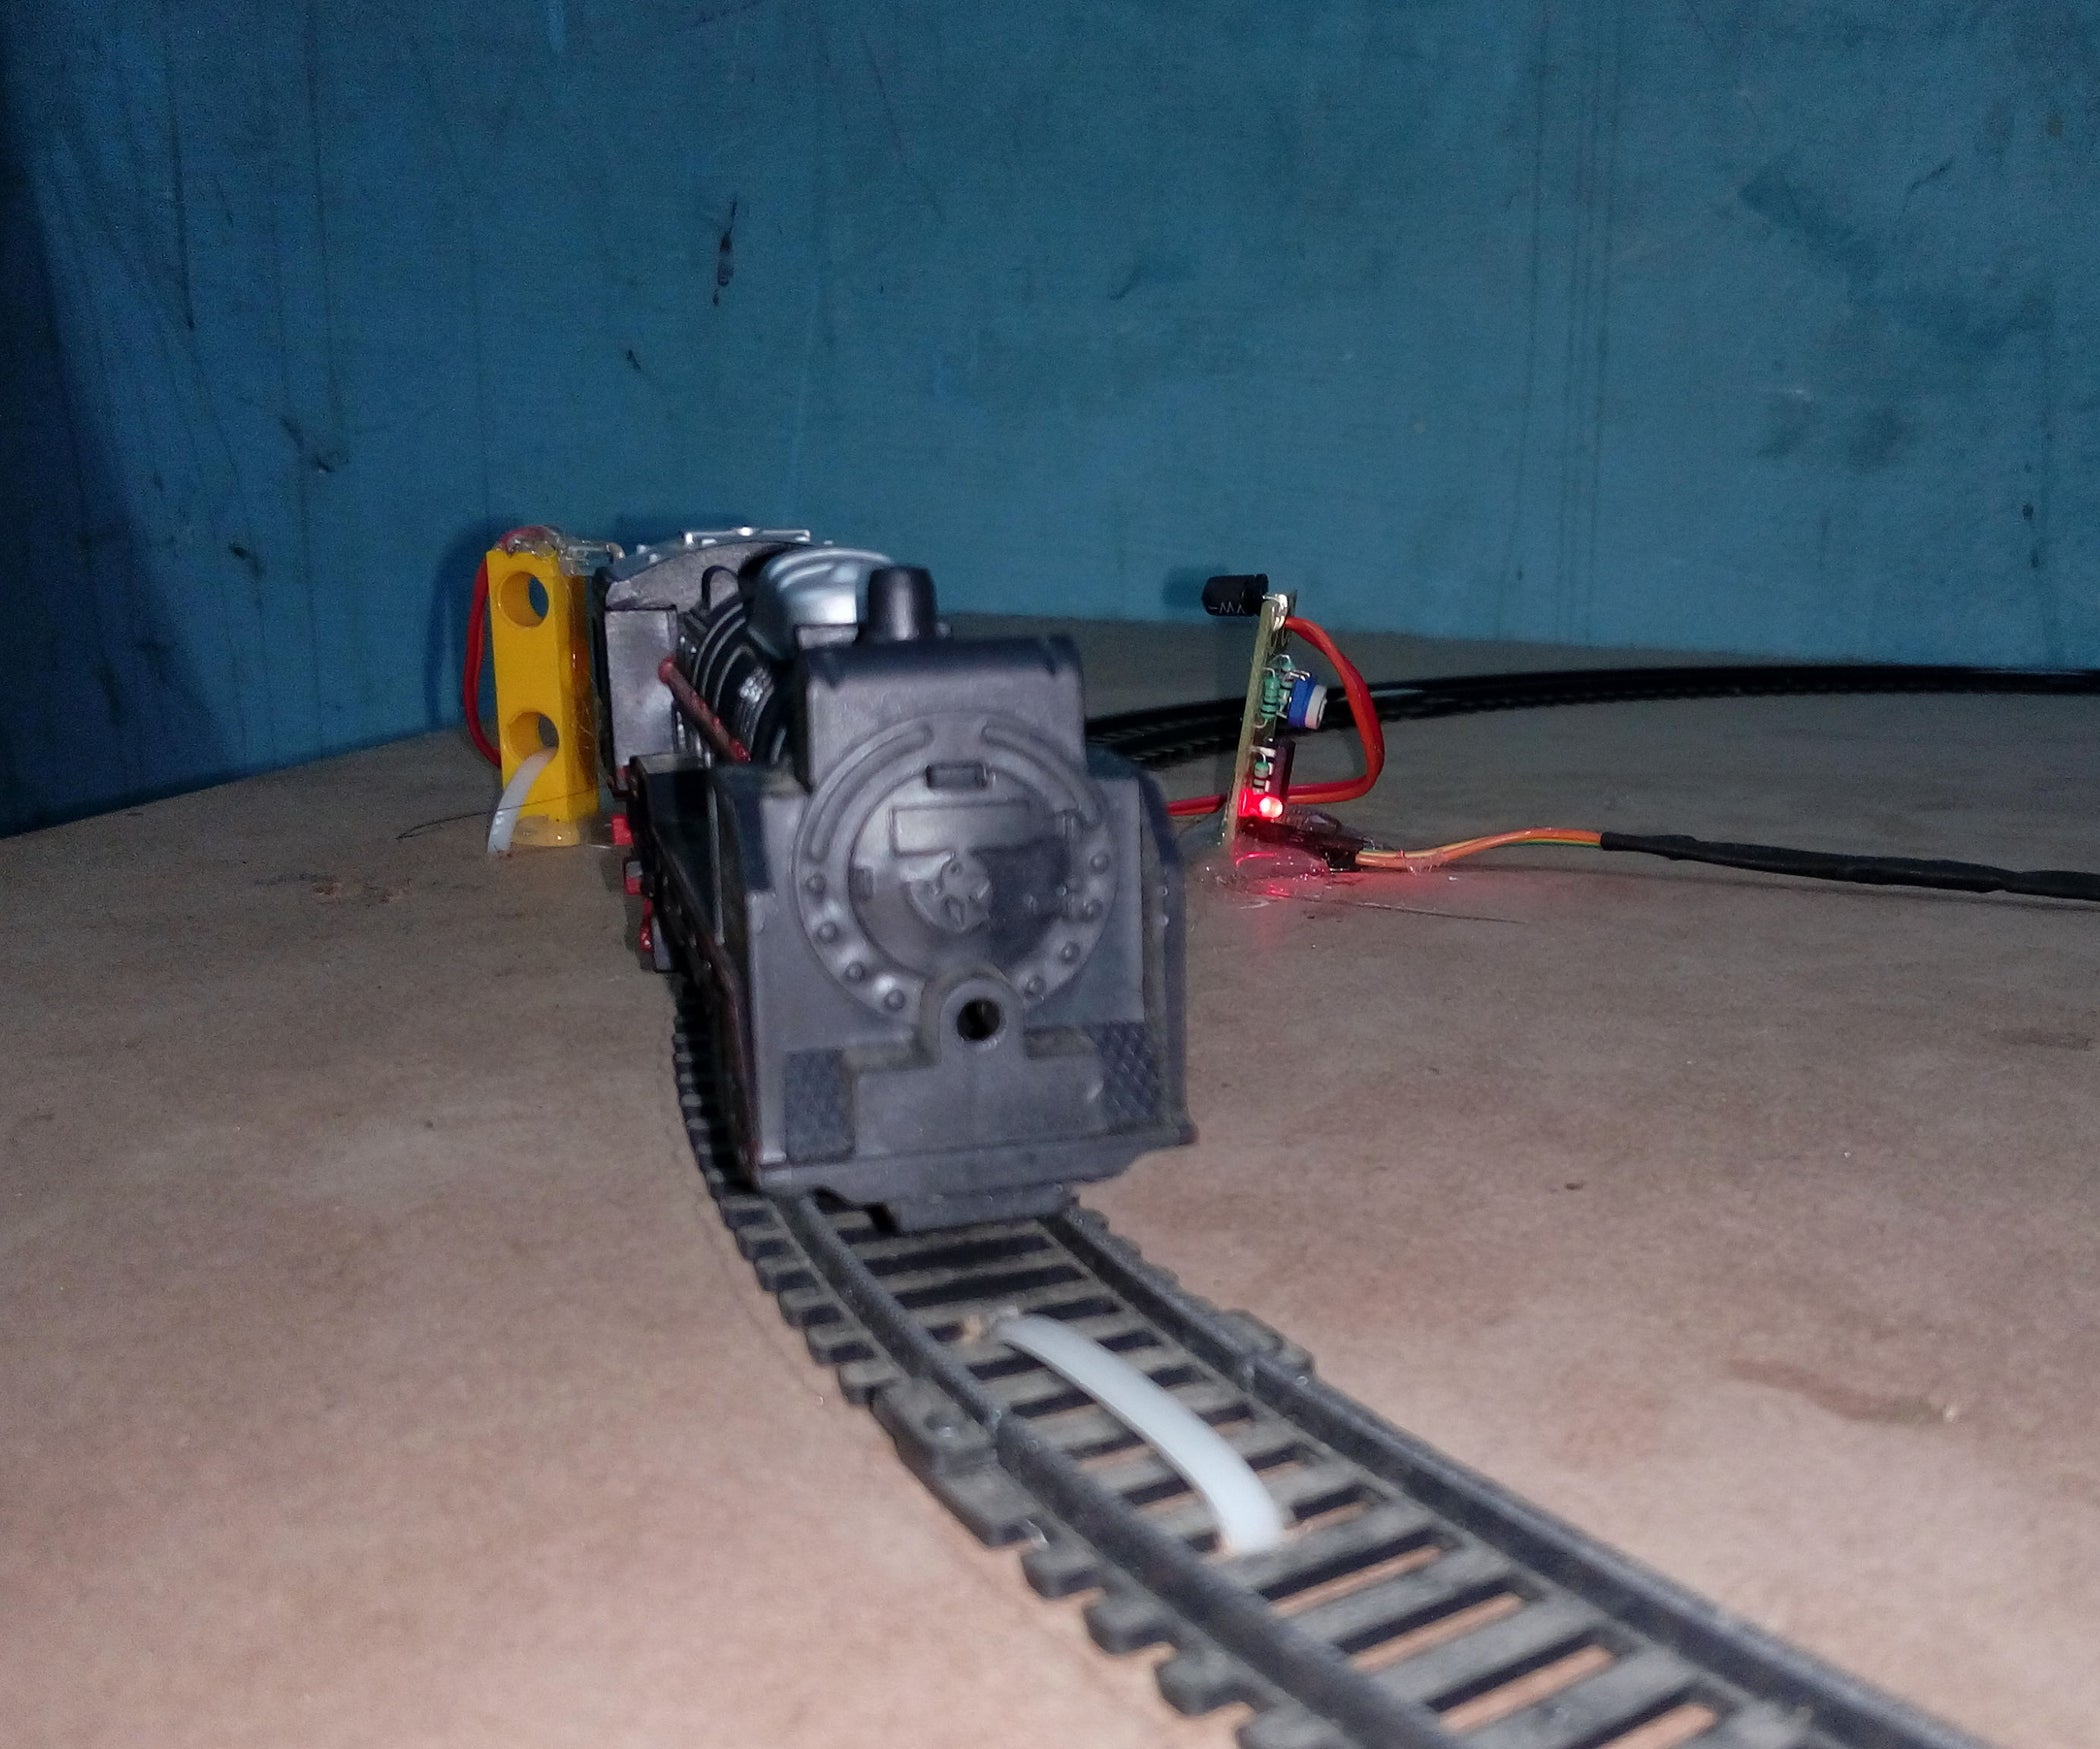 Automatic Railway Crossing Using Arduino 5 Steps Ho Track Wiring Details